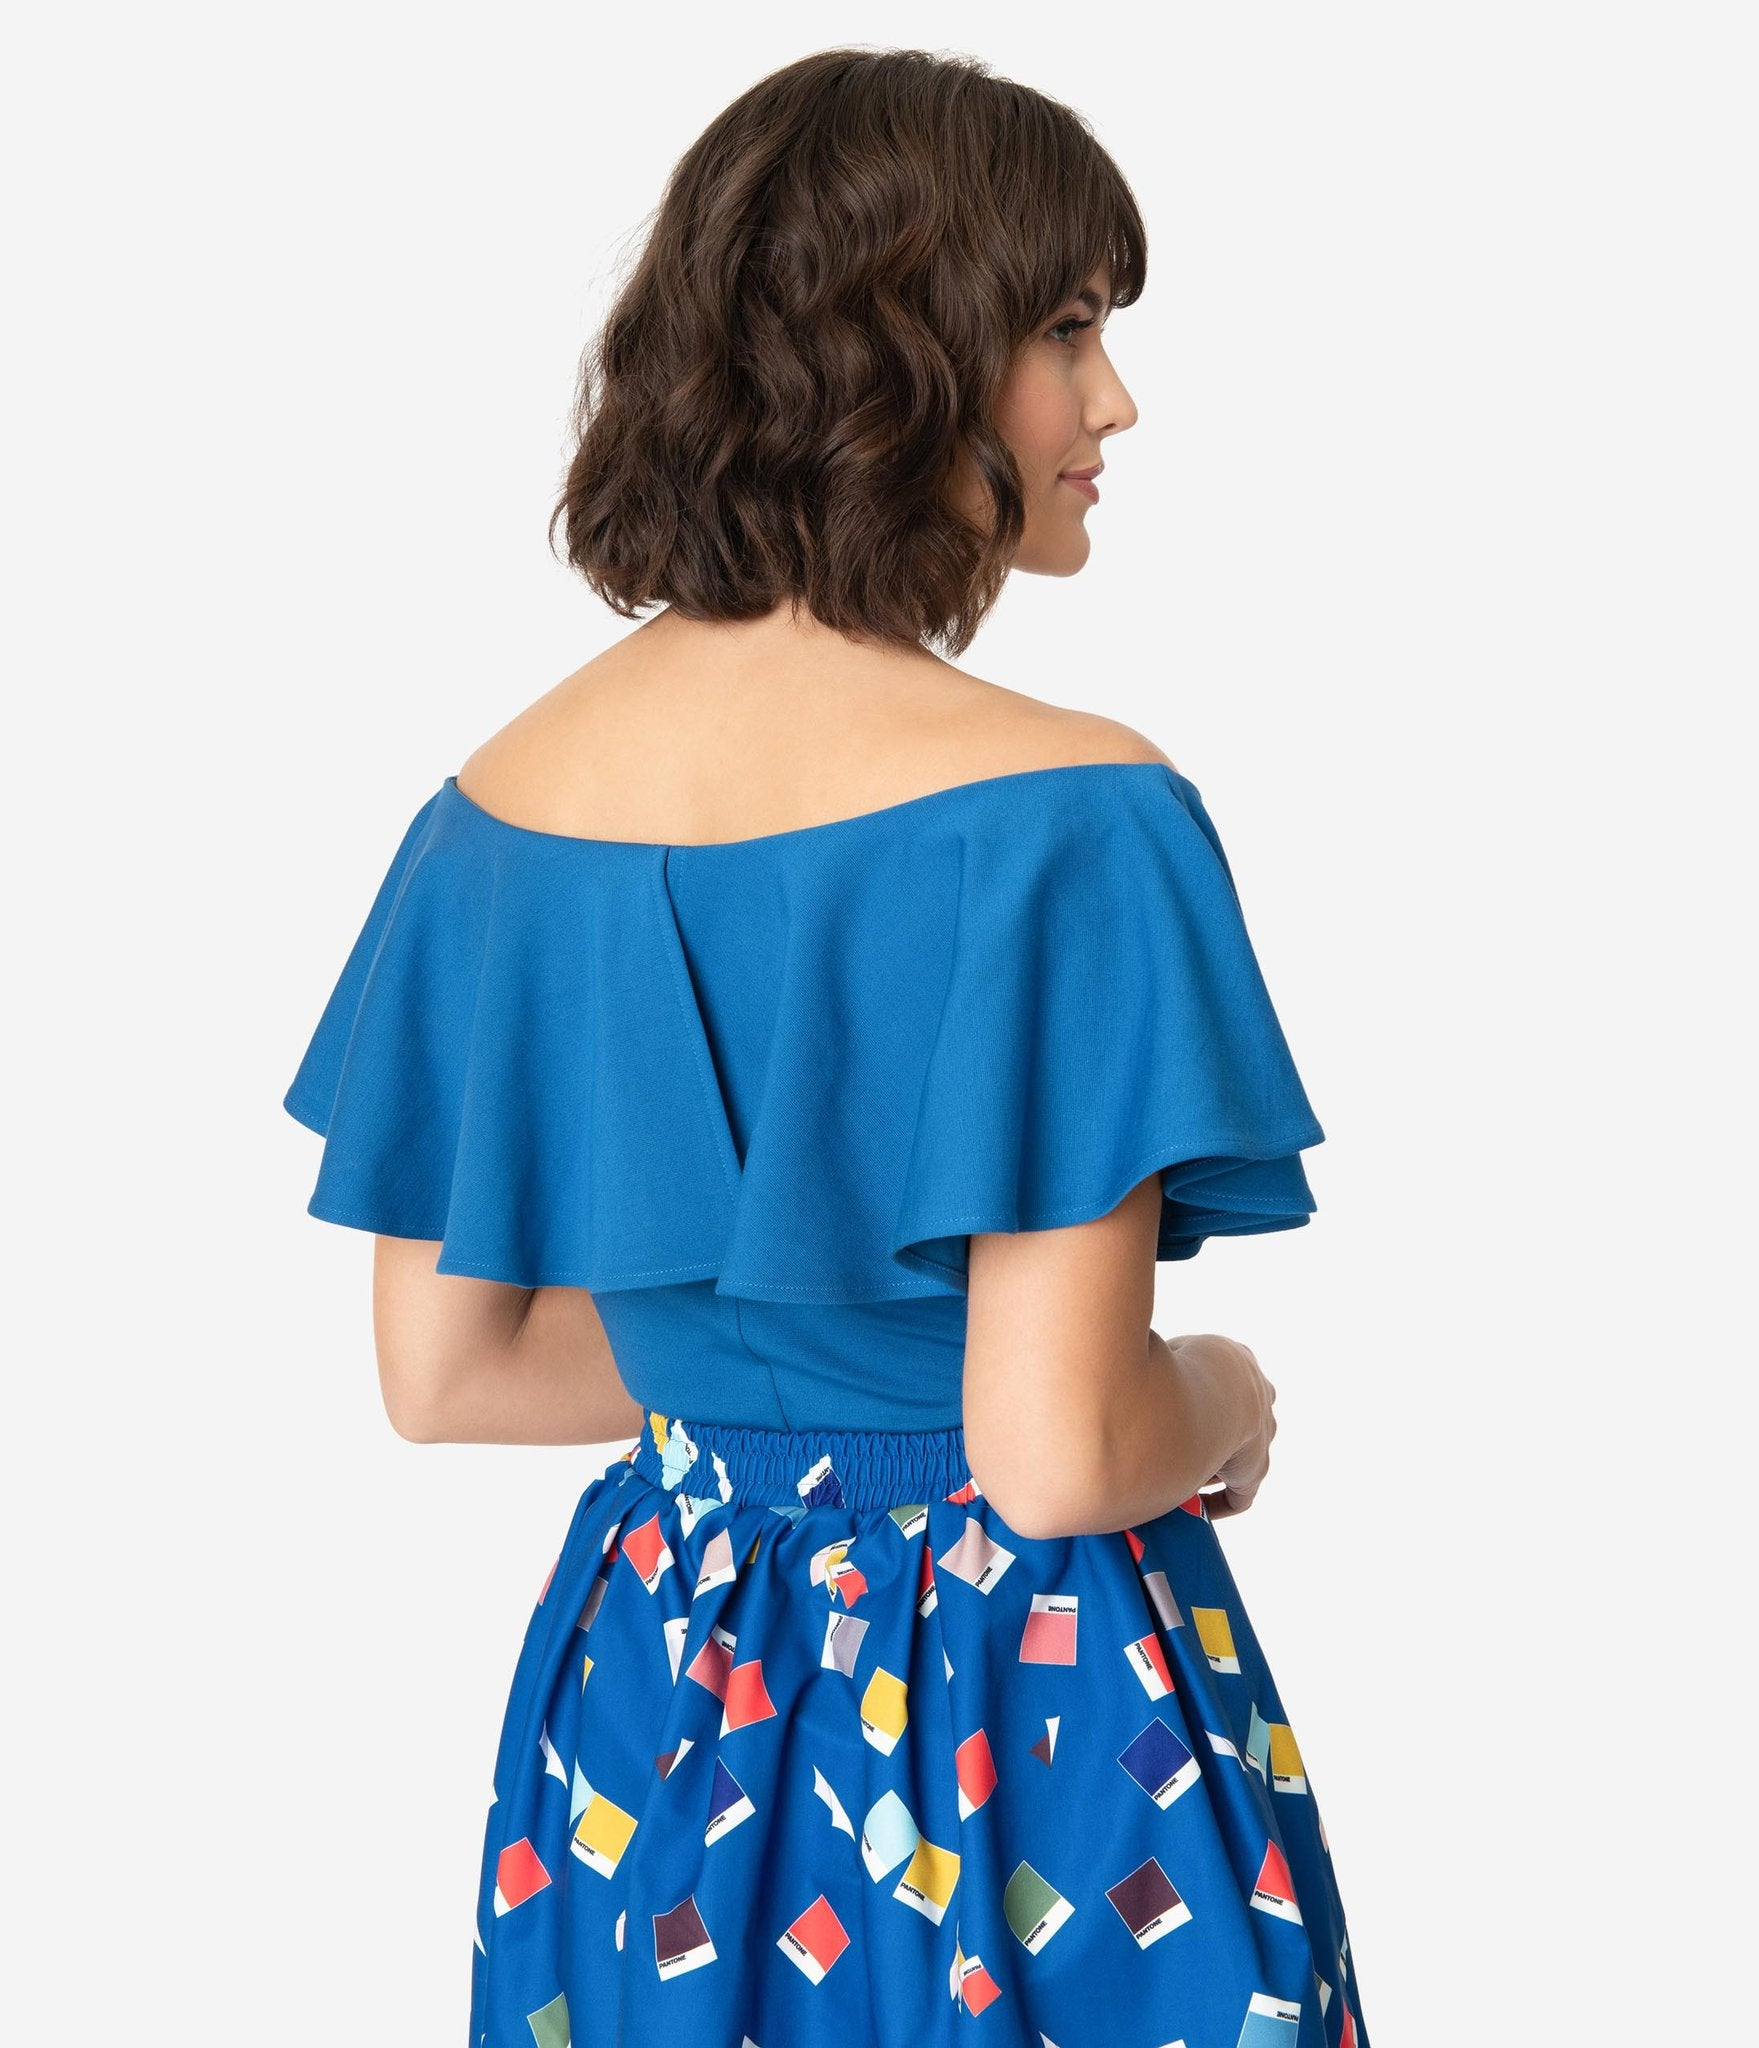 Pantone Classic Blue Frenchie Top by Unique Vintage